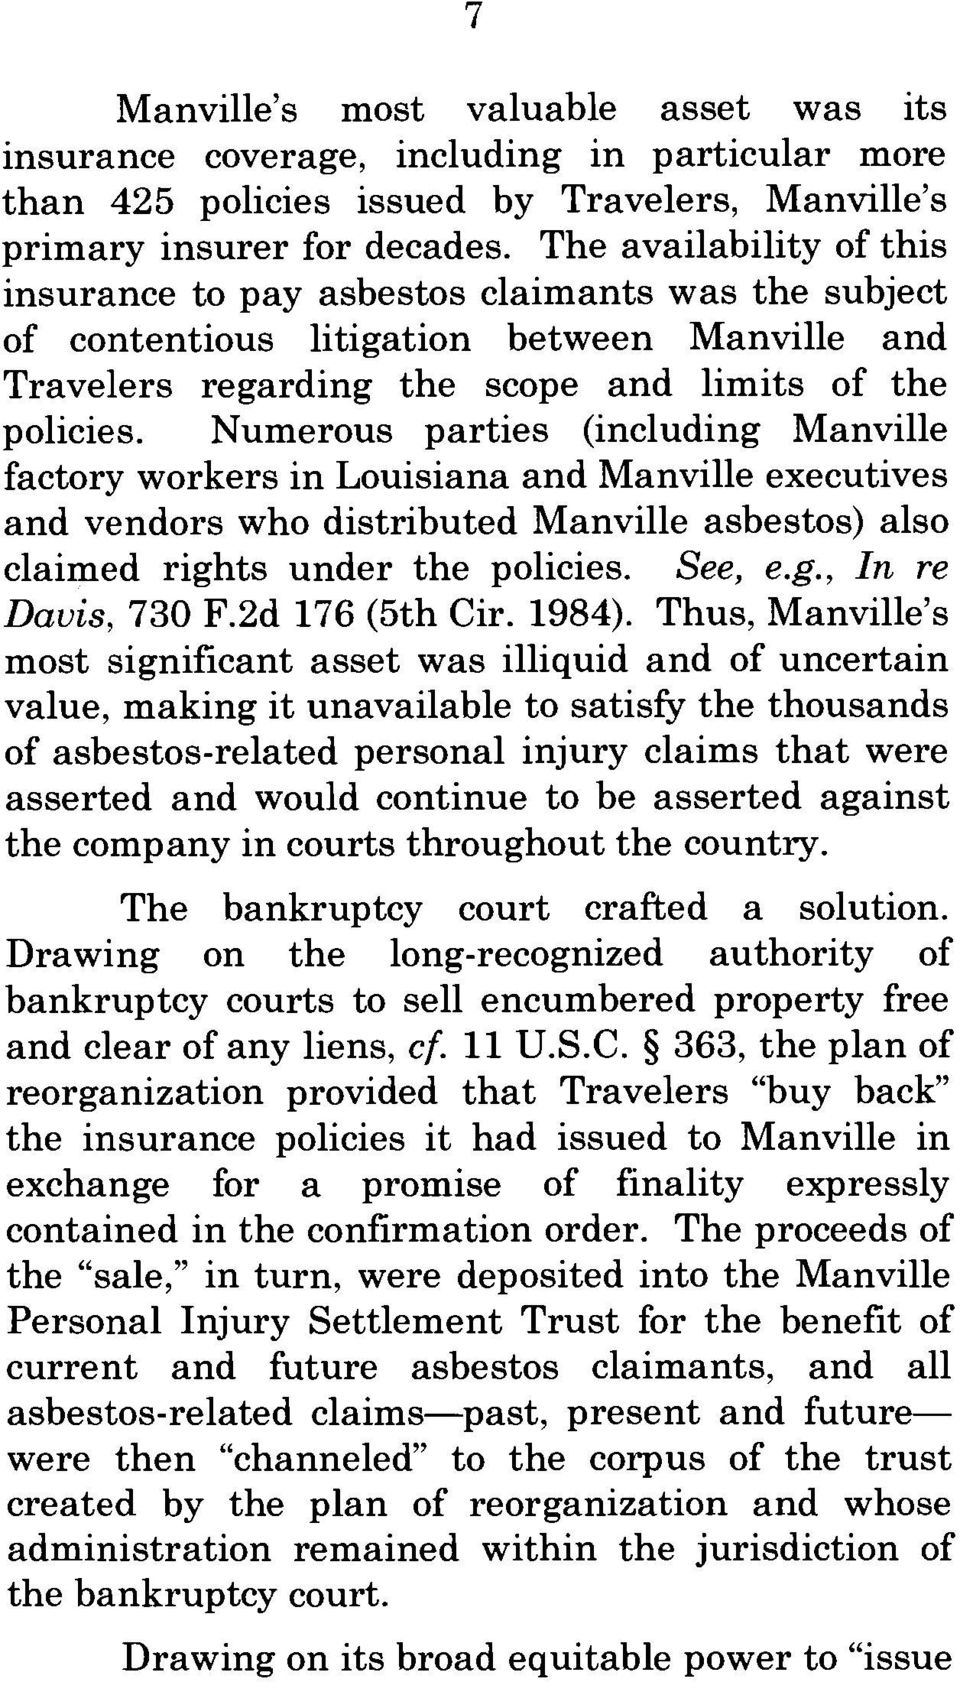 Numerous parties (including Manville factory workers in Louisiana and Manville executives and vendors who distributed Manville asbestos) also claimed rights under the policies. See, e.g., In re Davis, 730 F.